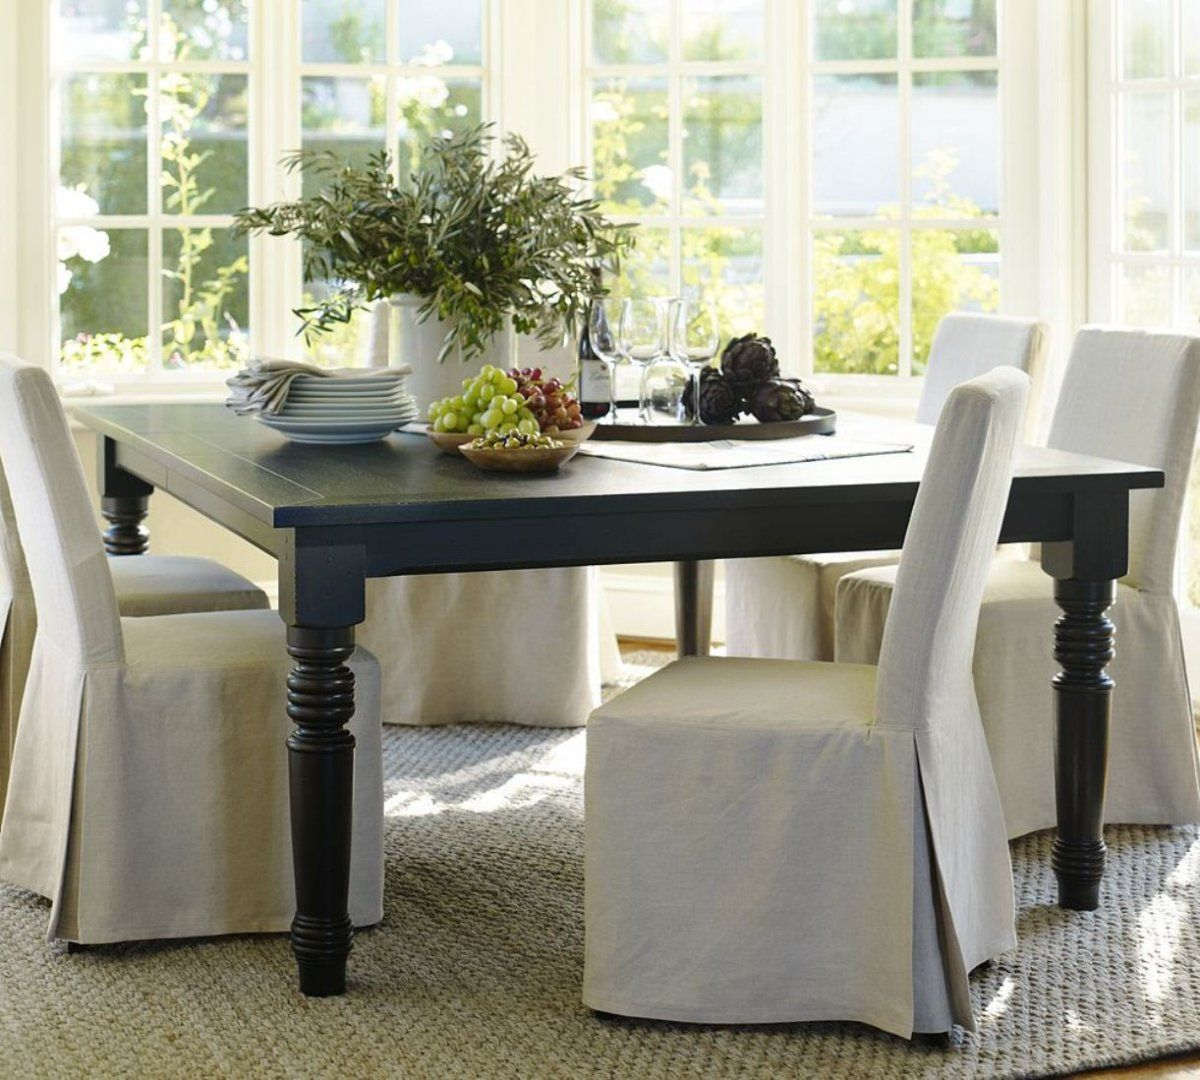 Country Style Pottery Barn Dining Room Design With Dark Grey Wooden Rectangular Table And